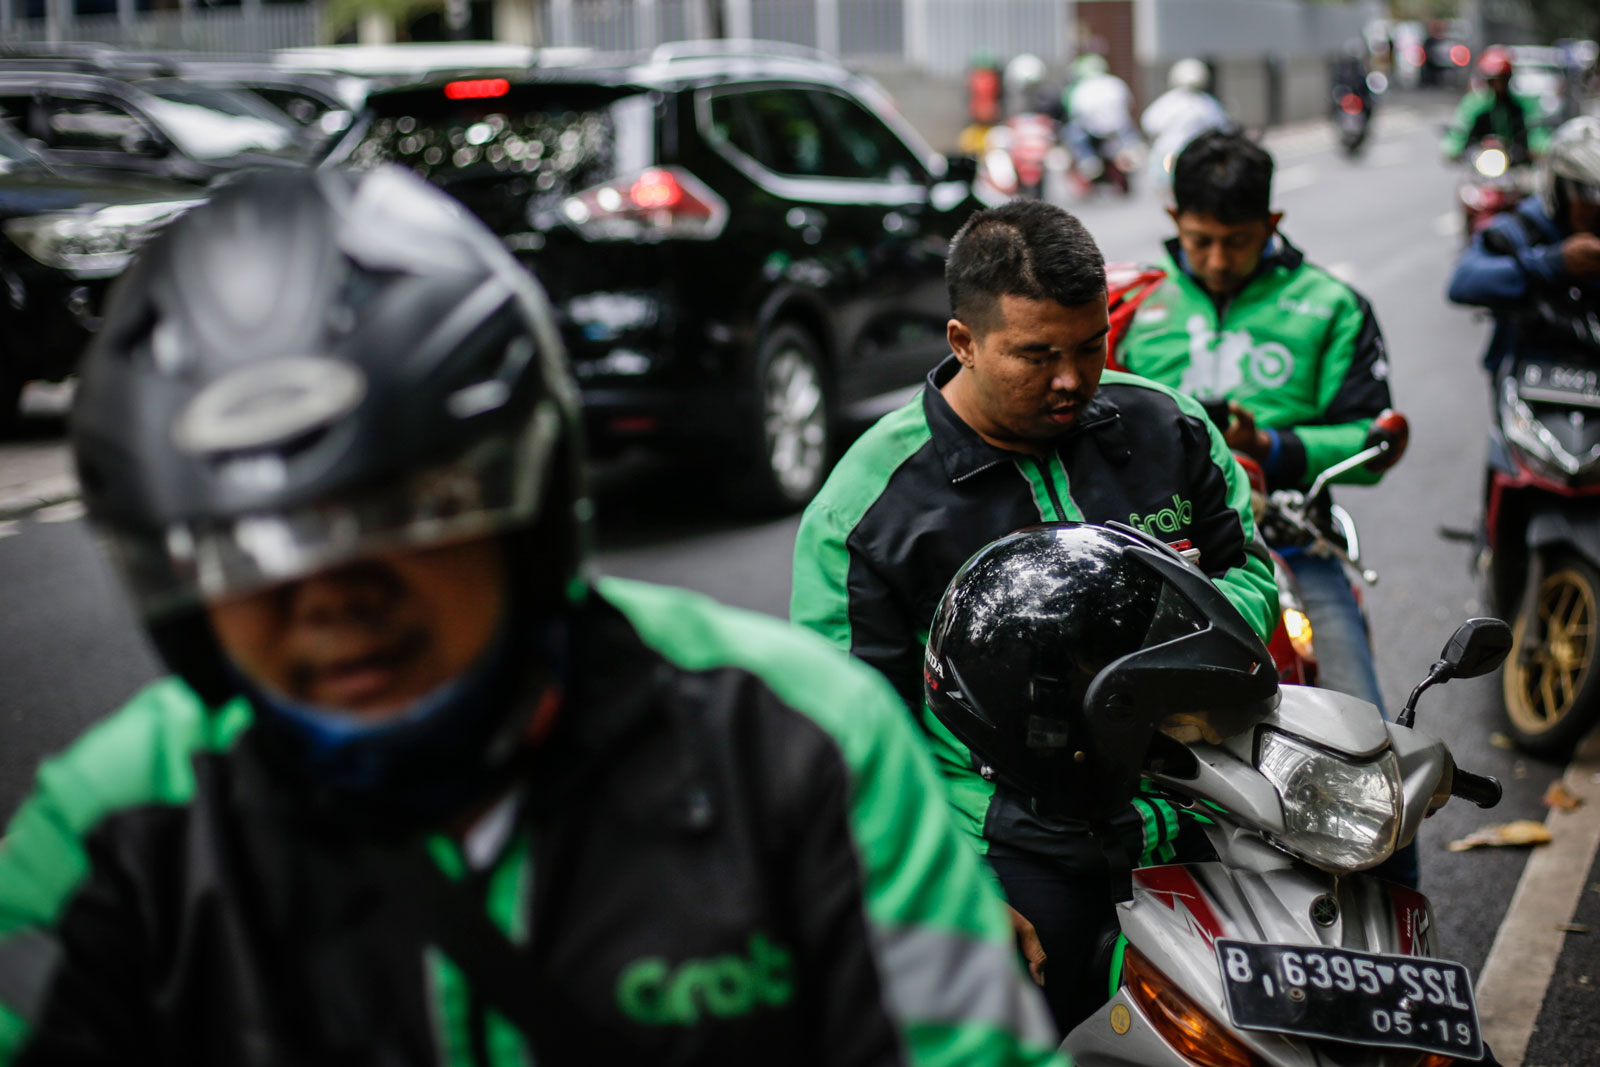 Gojek drivers seen in Jakarta in December 2017. Photo: EPA/Mast Irham